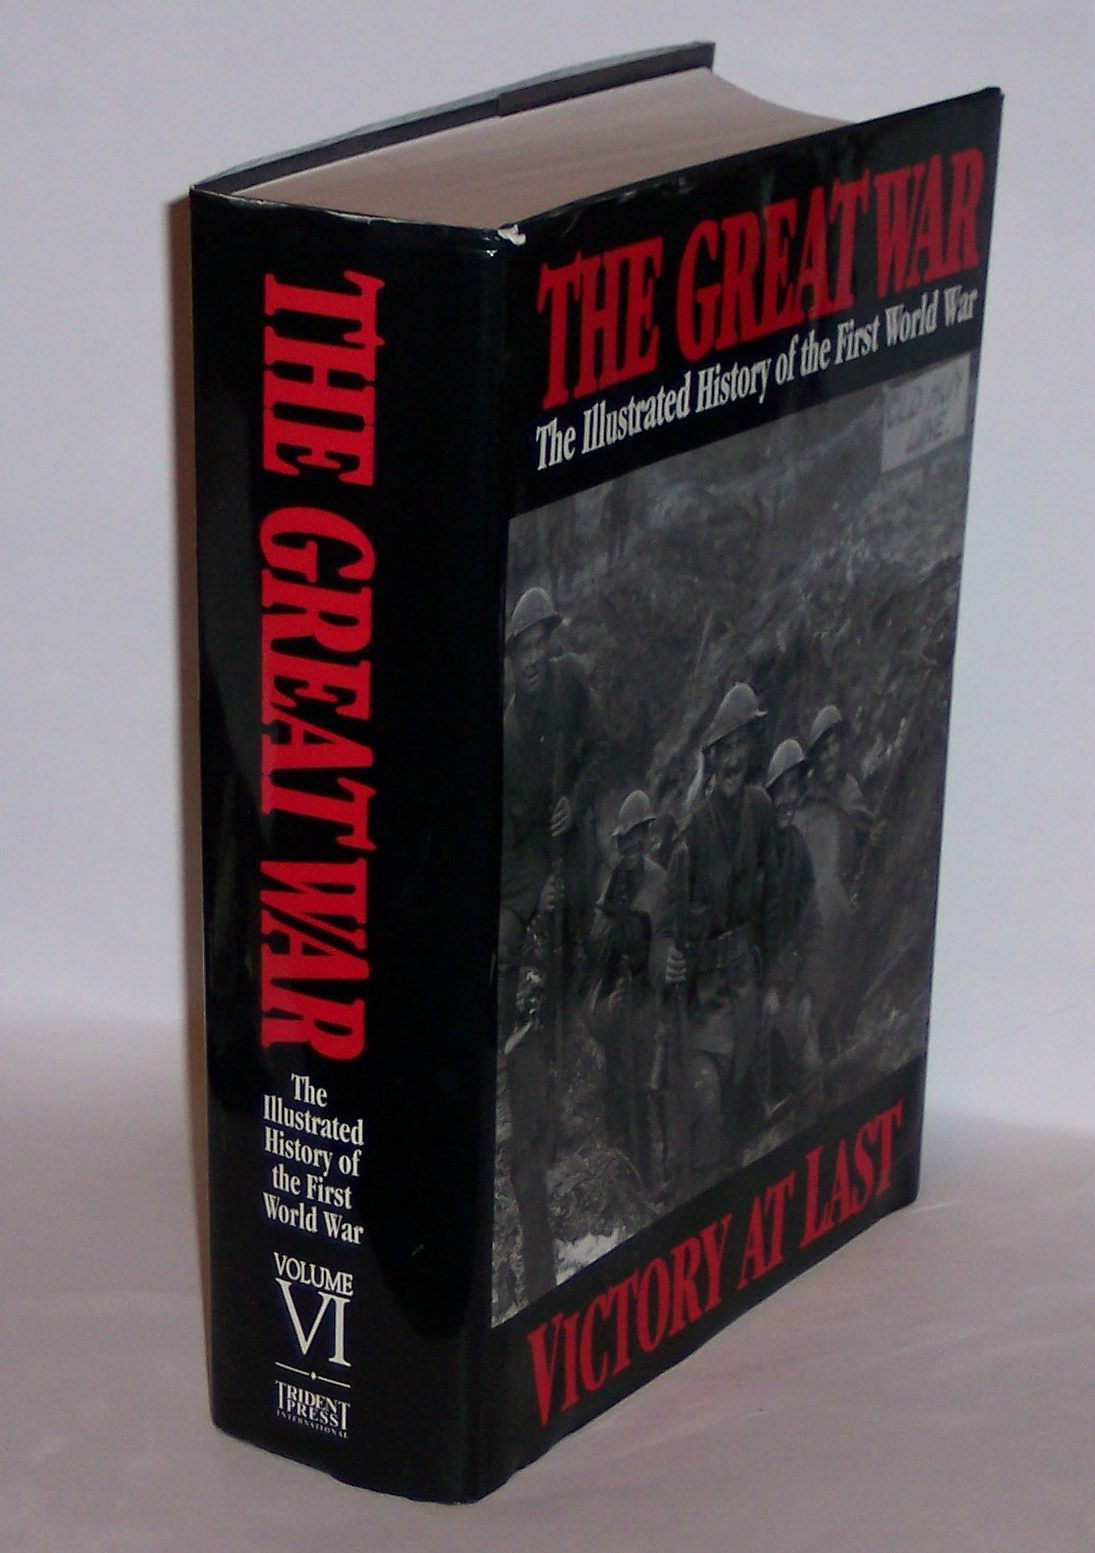 Image for The Great War The Illustrated History of the First World War Volume VI Victory At Last